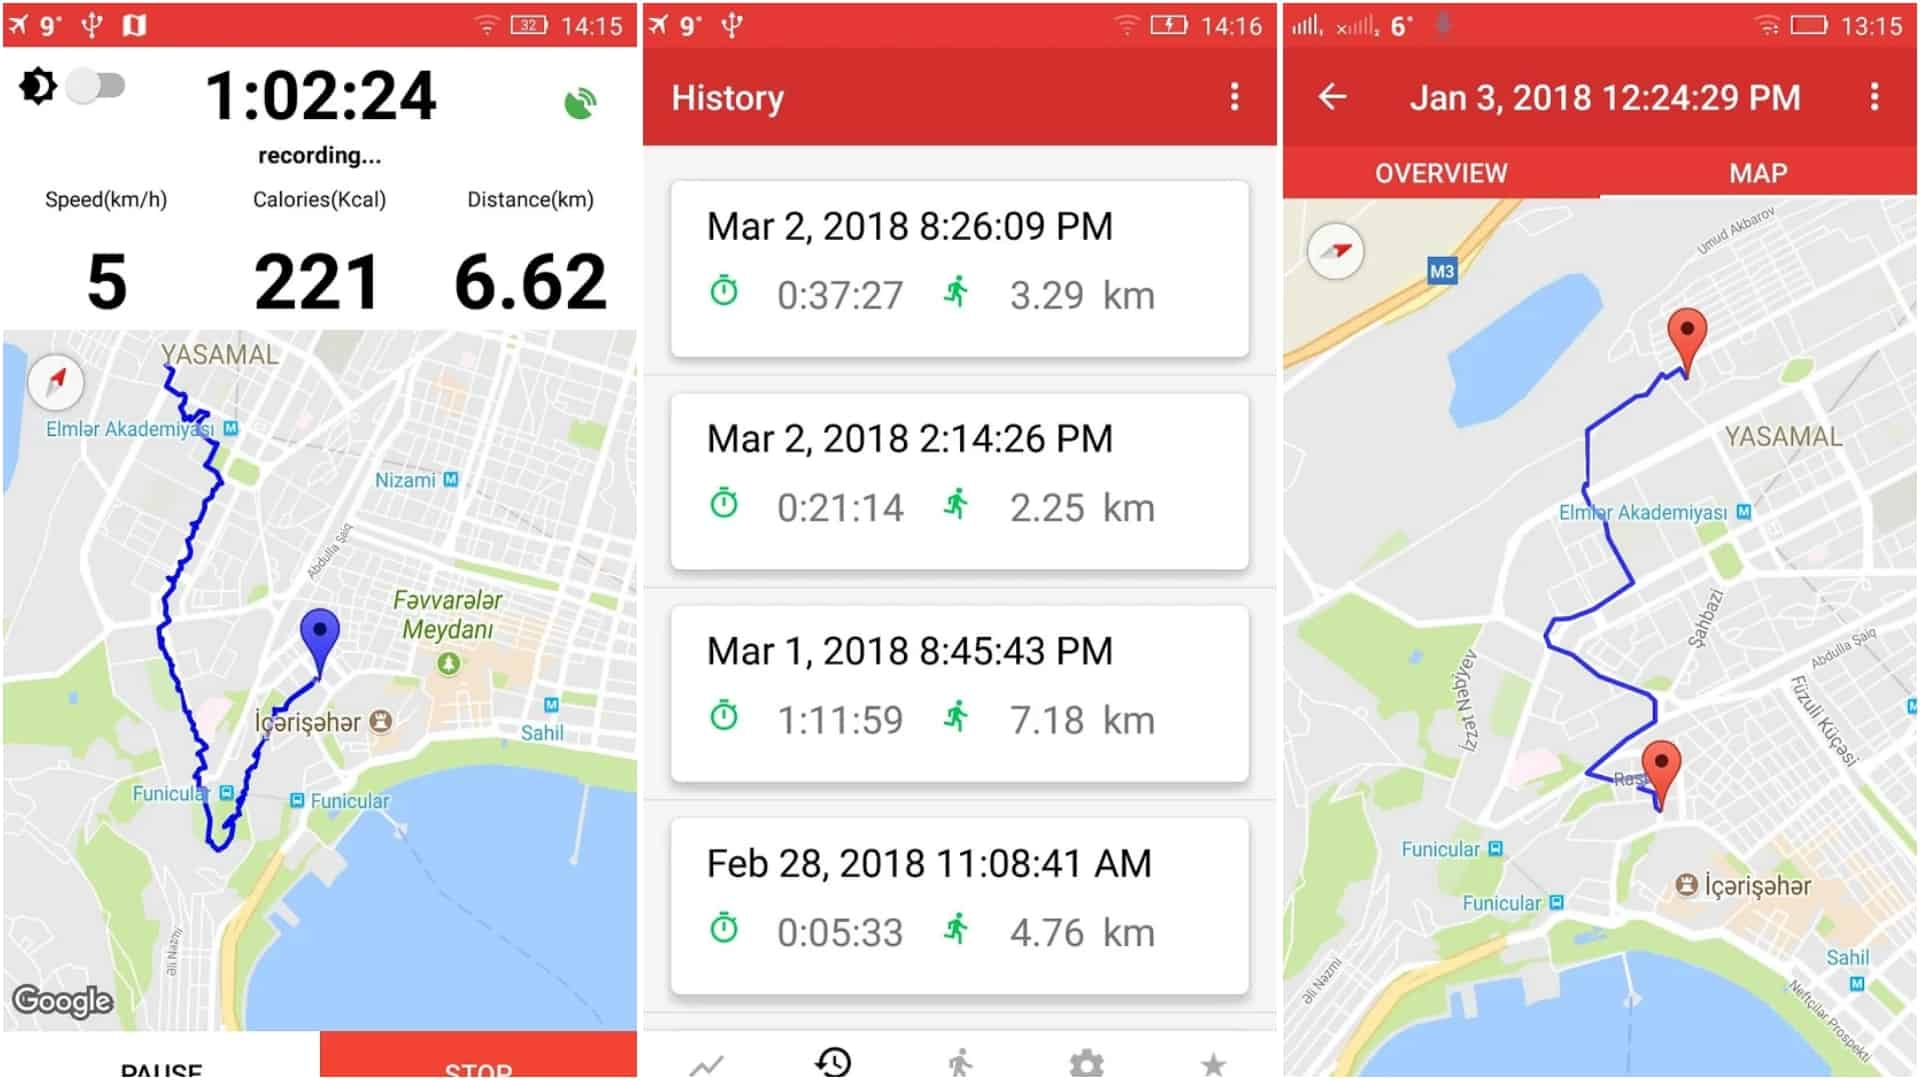 Walking for Weight Loss Pedometer Step Counter app image April 2020